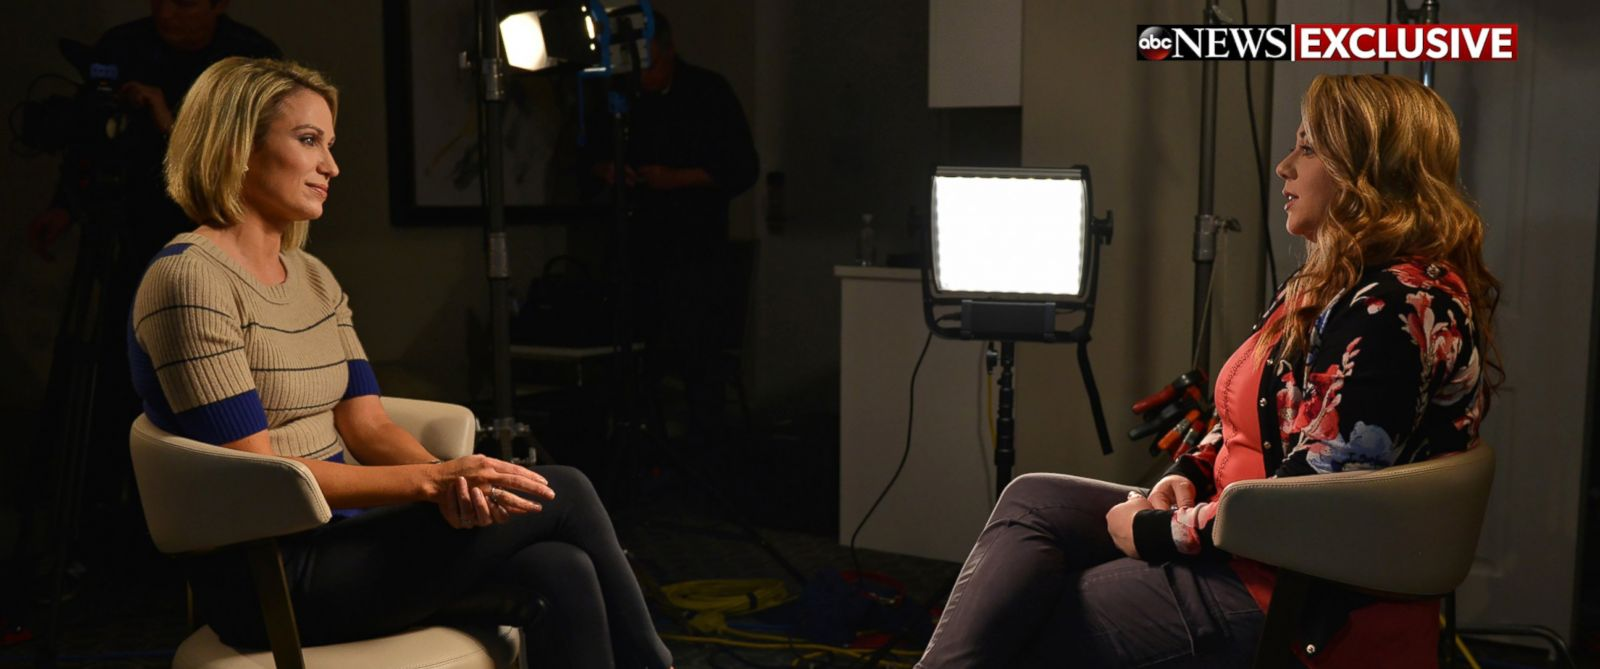 """PHOTO: Leanna Taylor sat down for an exclusive interview with ABCs Amy Robach for """"Good Morning America"""" and """"20/20."""""""